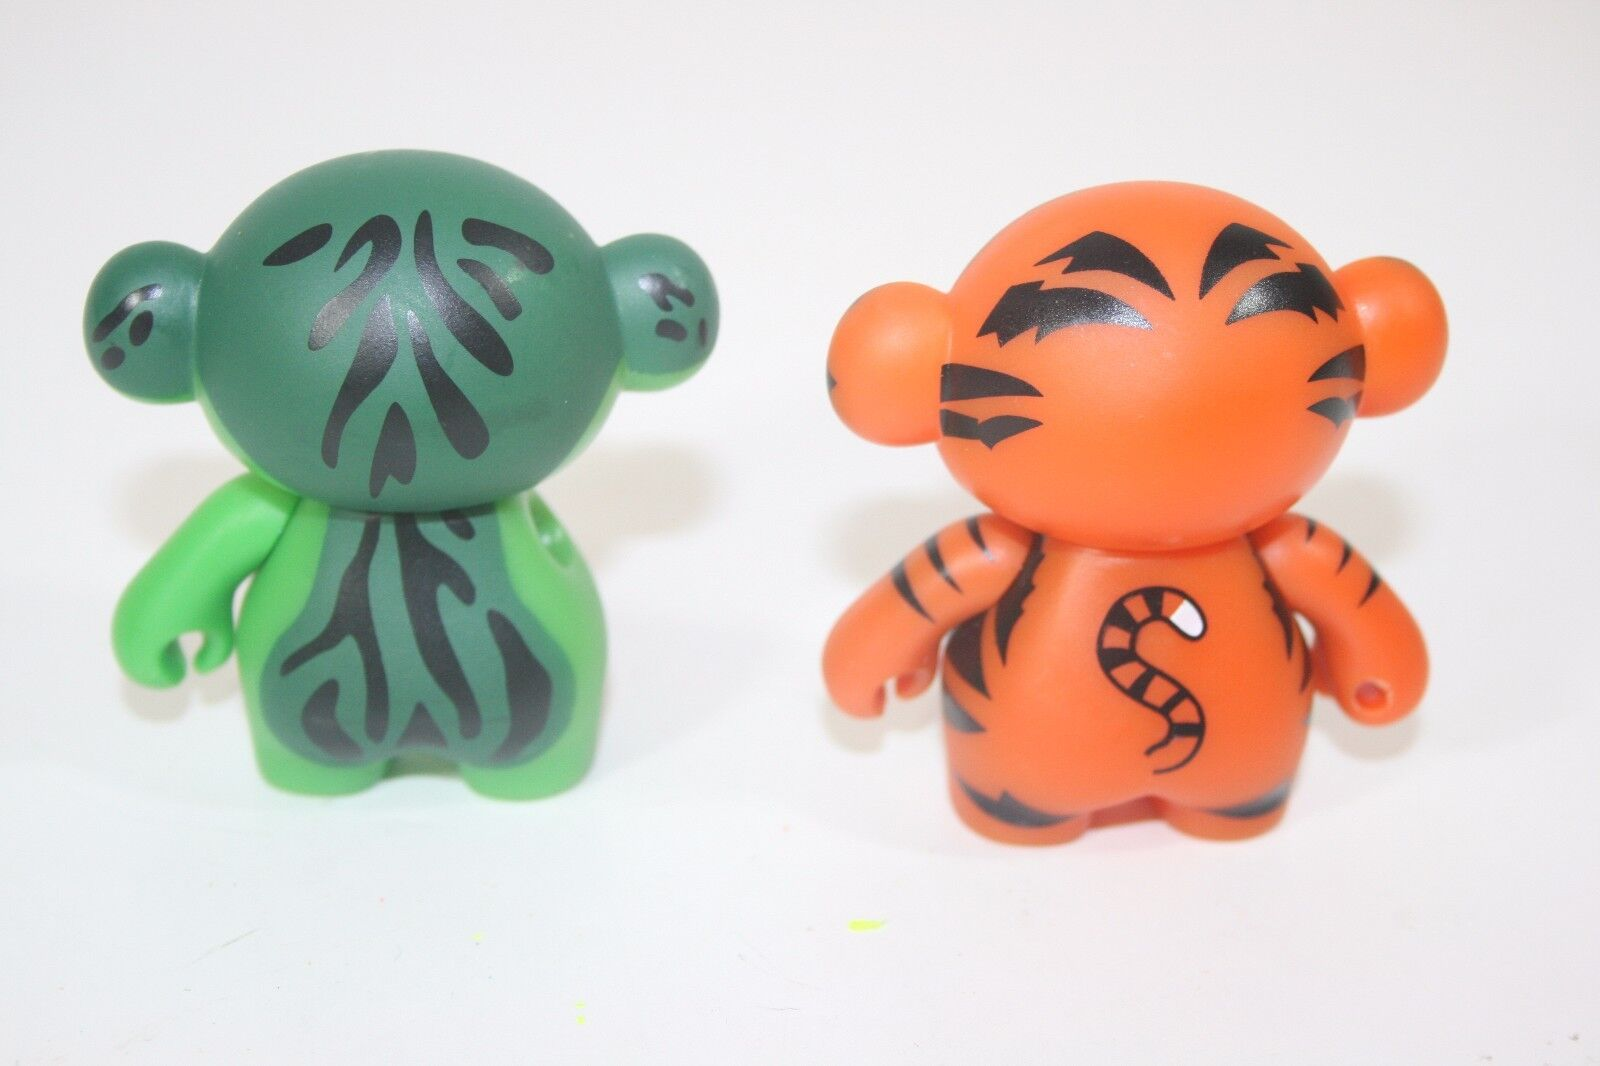 Monskey collectible collectible collectible Tiggz The Tiger and Brubs the Frog Figures Figurine 93bbd6